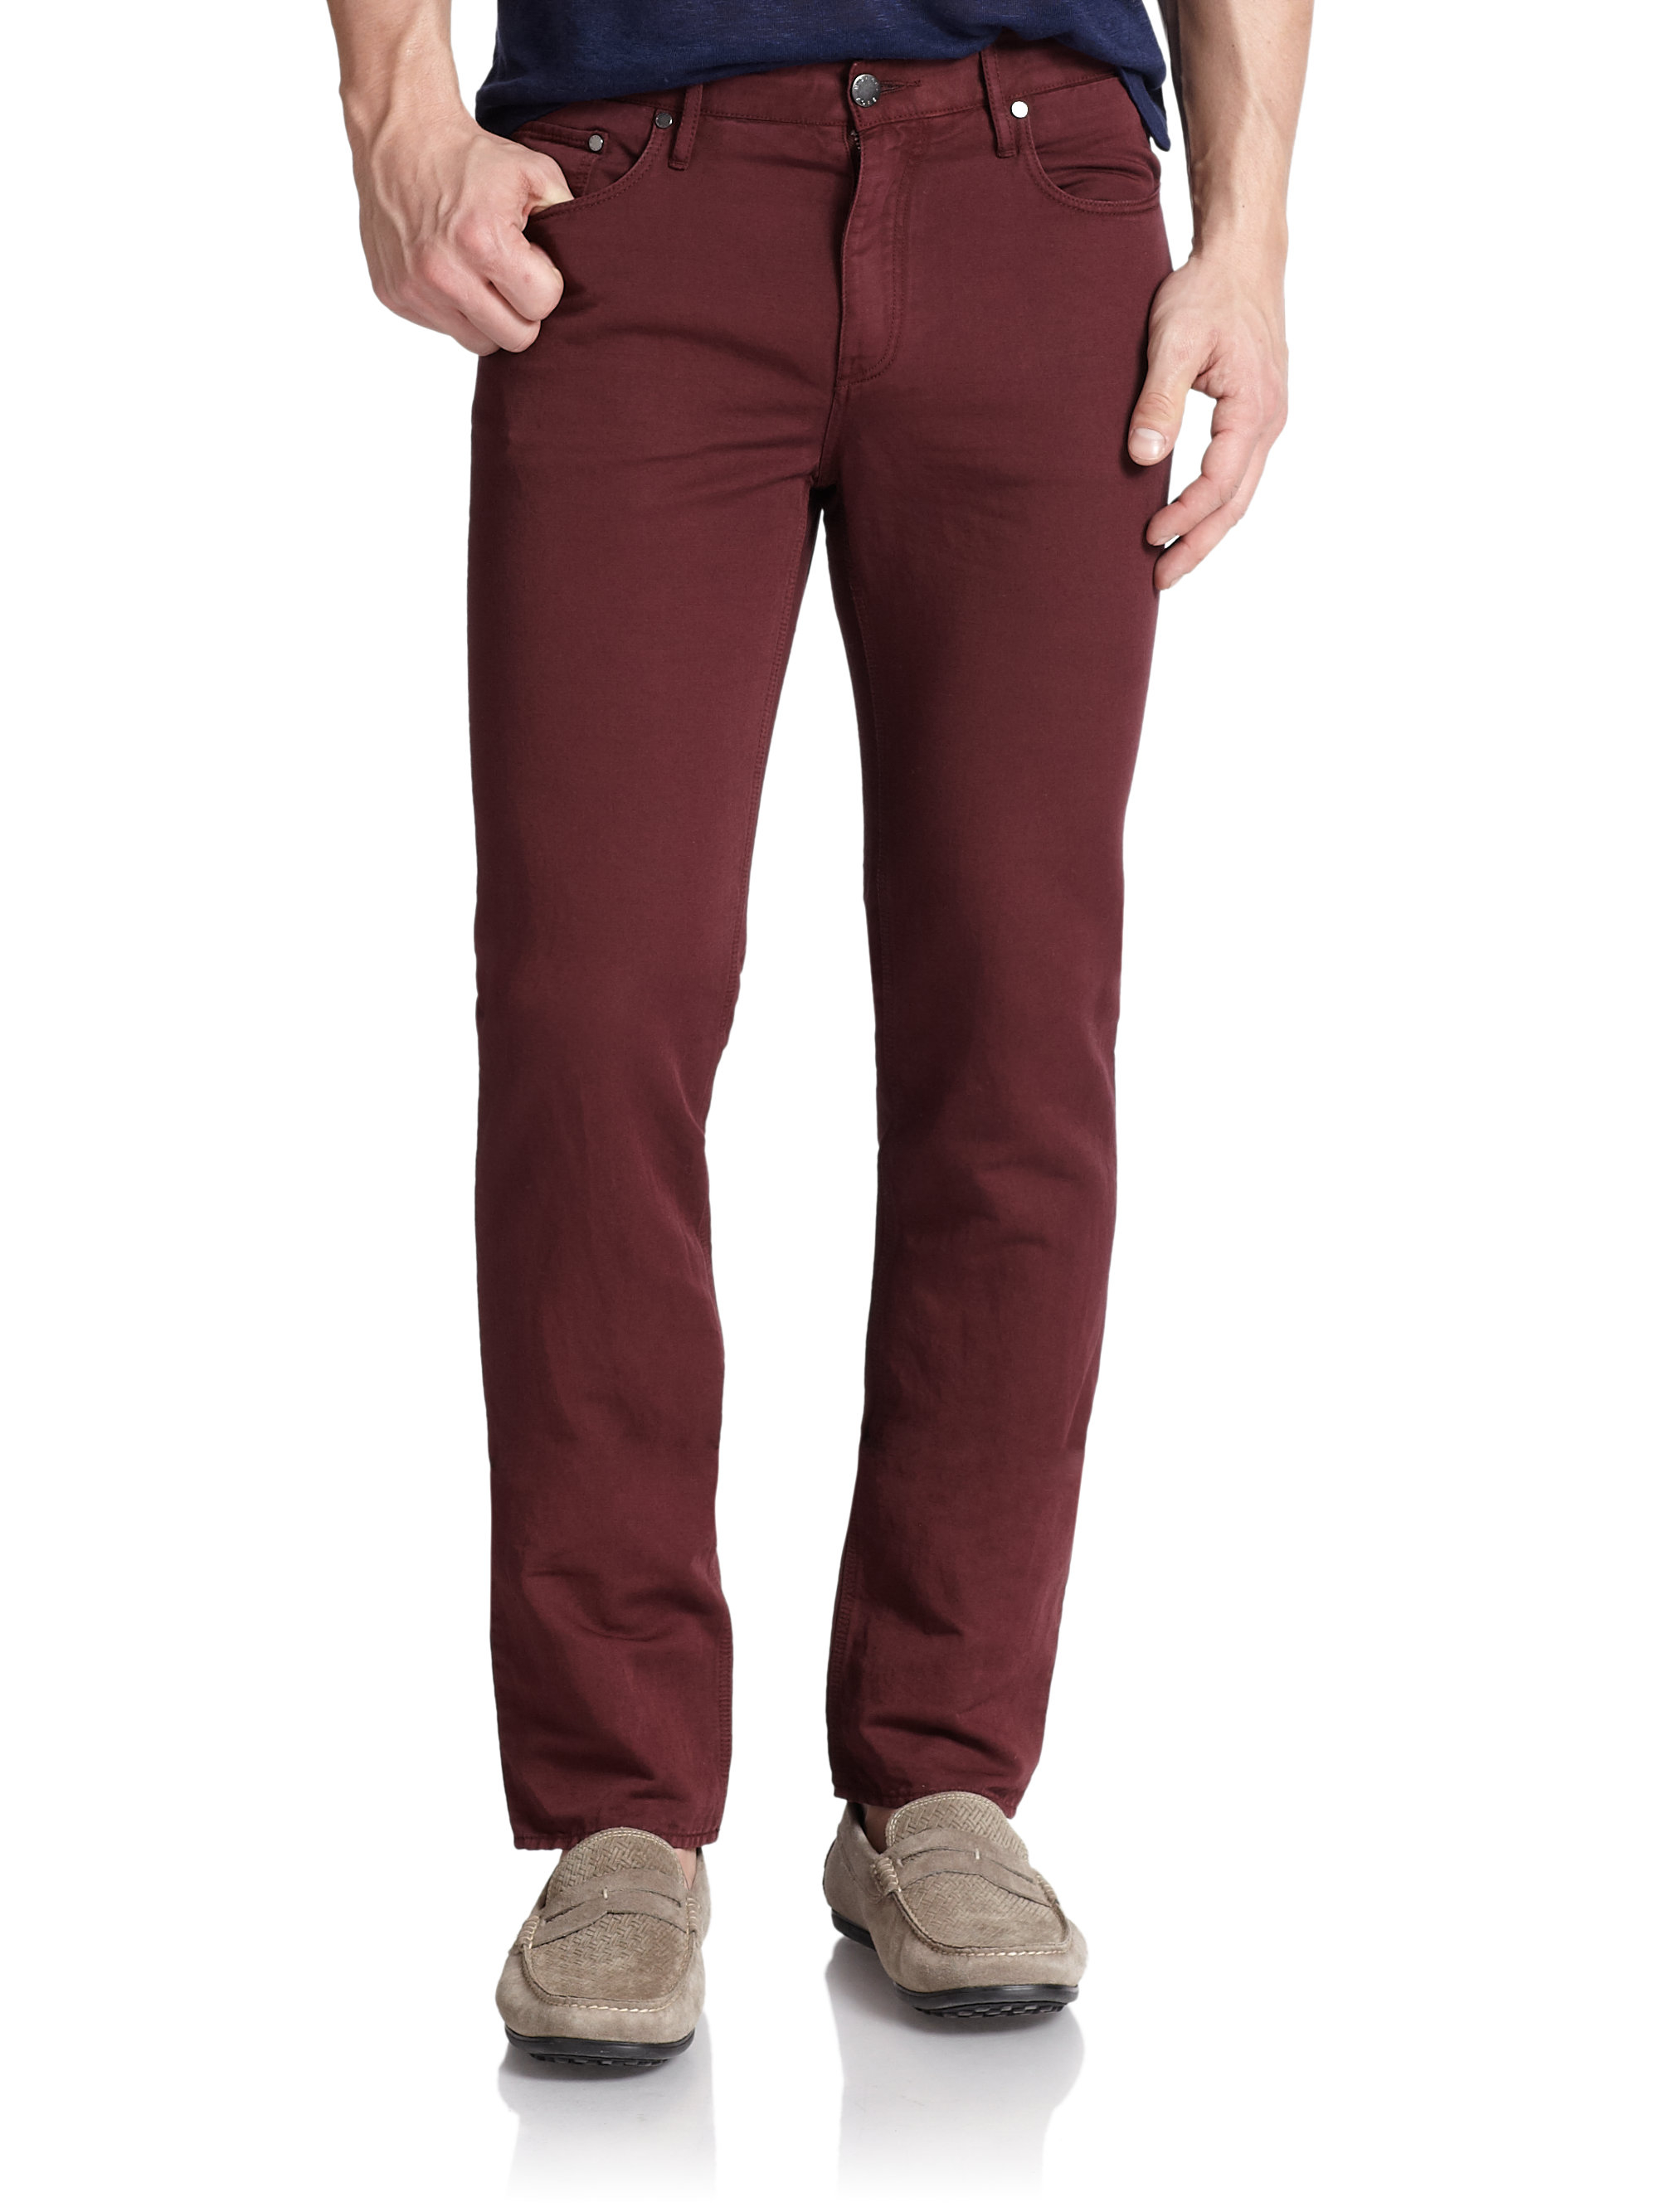 michael kors tailored straight leg jeans in red for men lyst. Black Bedroom Furniture Sets. Home Design Ideas